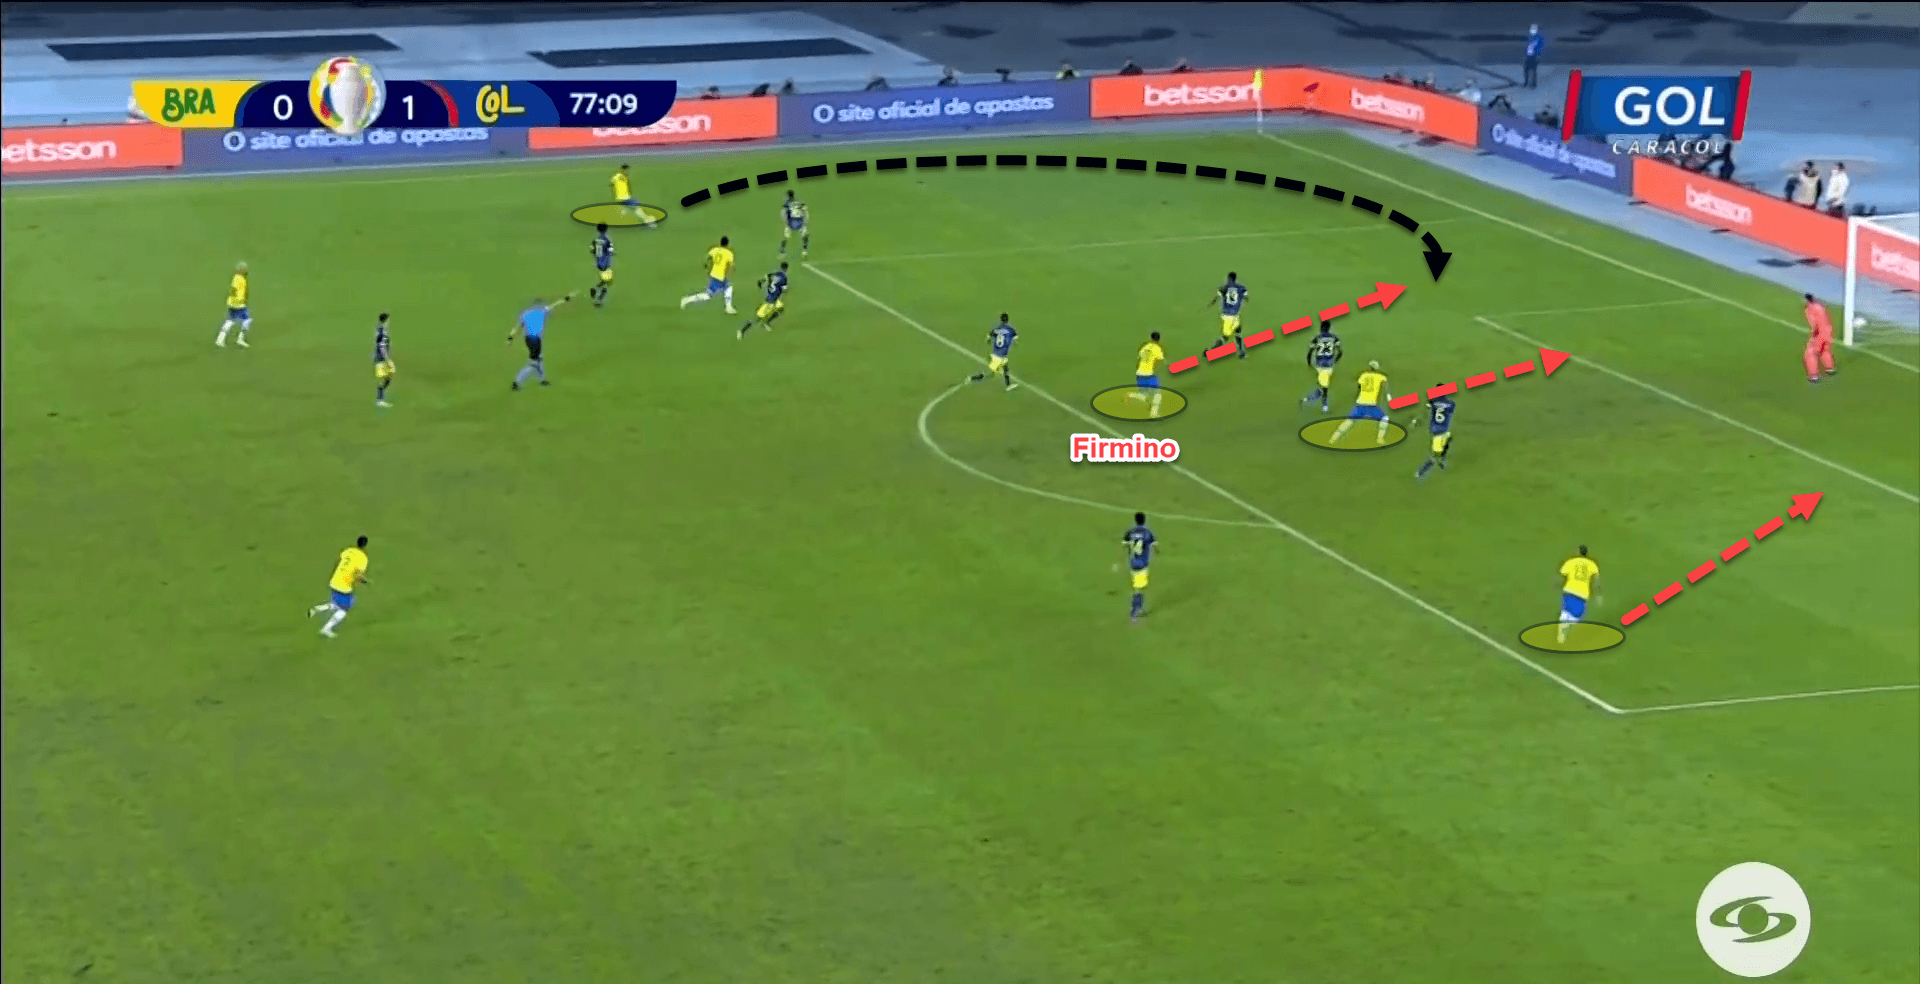 Copa America Preview: Why preventing crosses and compacting space between the lines will be crucial for Chile to nullify Brazil – tactical analysis